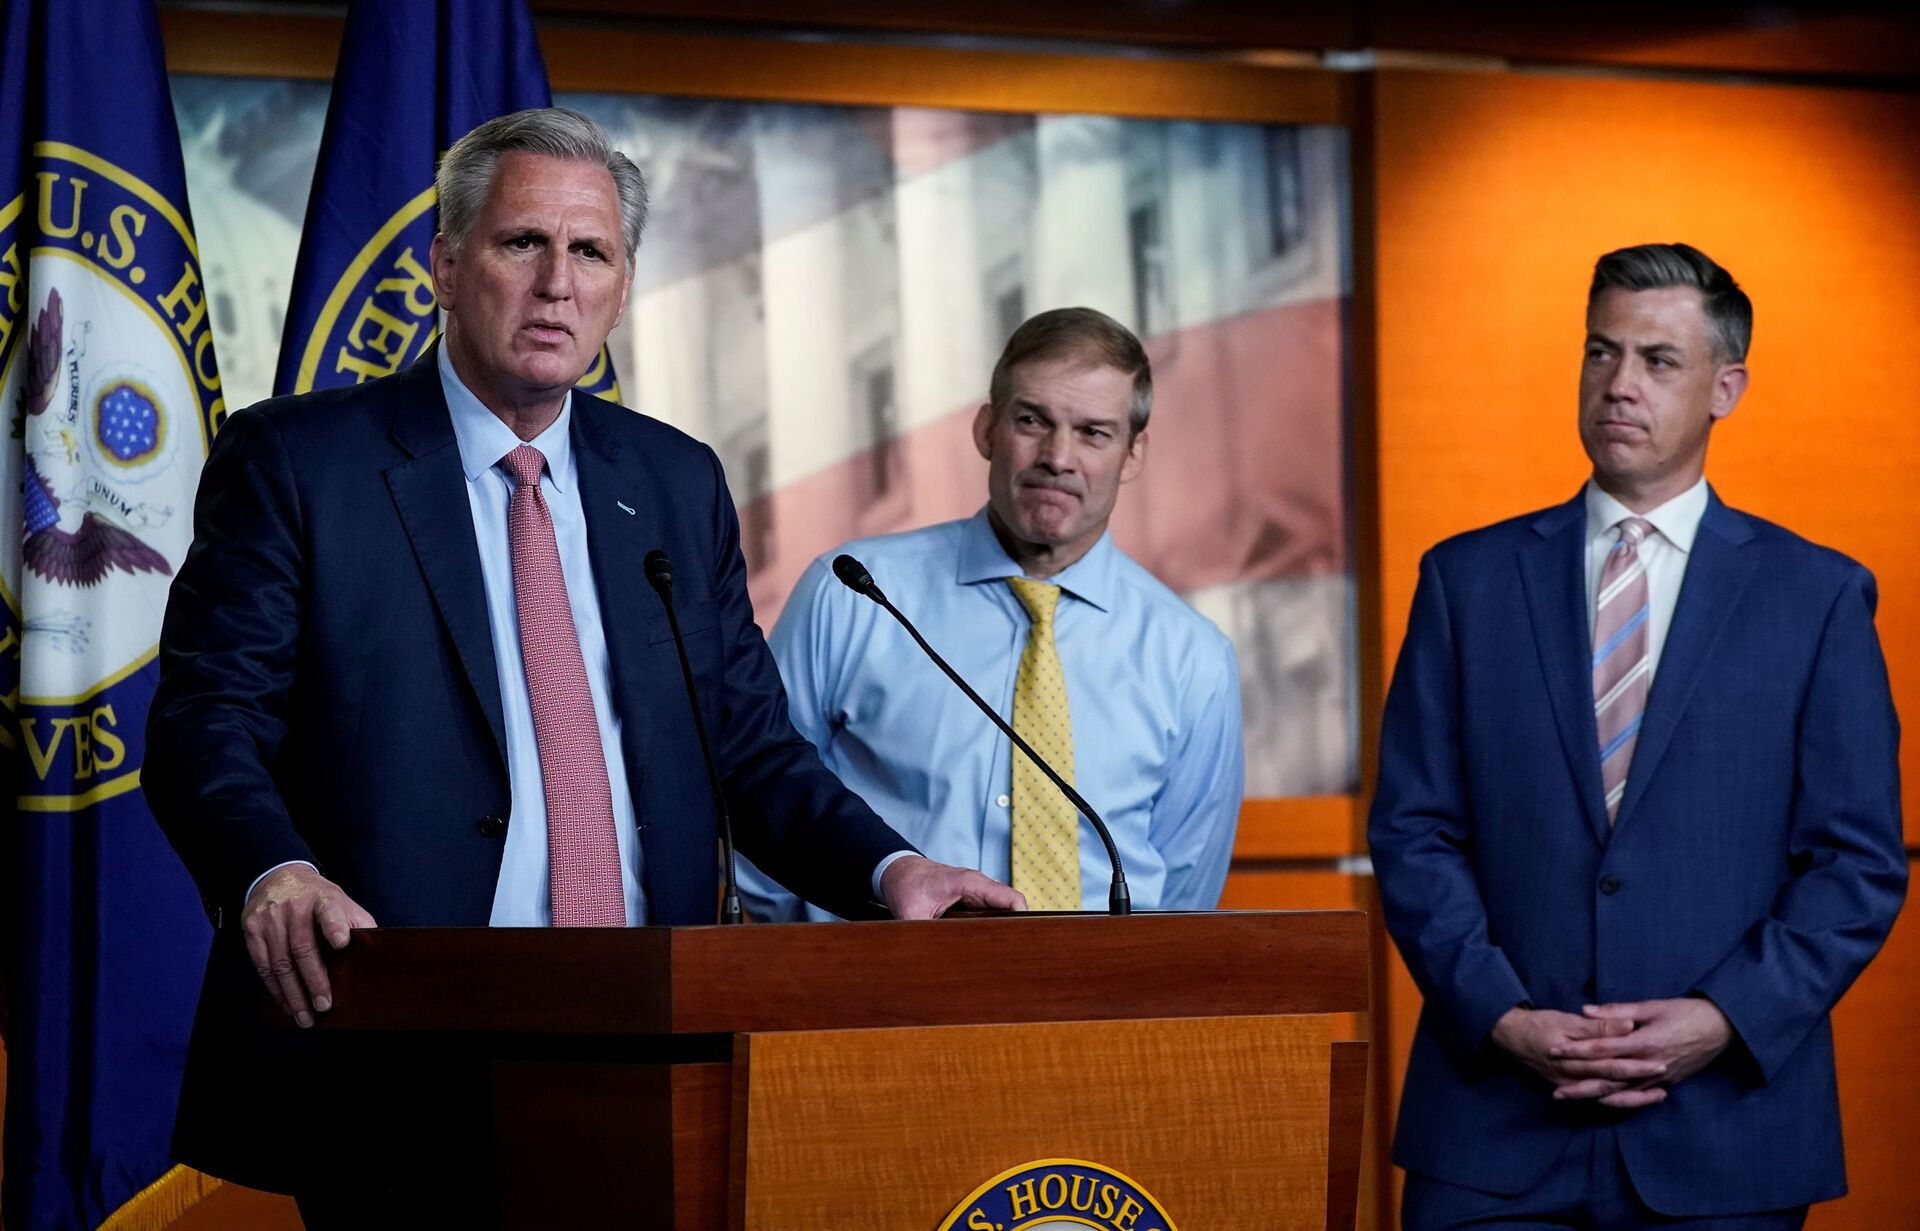 U.S. House Minority Leader Kevin McCarthy (R-CA) announces the withdrawal of his nominees to serve on the special committee probing the Jan. 6 attack on the Capitol, as two of the Republican nominees, Reps' Jim Jordan (R-OH) and Jim Banks (R-IN), standby during a news conference on Capitol Hill in Washington, U.S., July 21, 2021 - Sputnik International, 1920, 07.09.2021